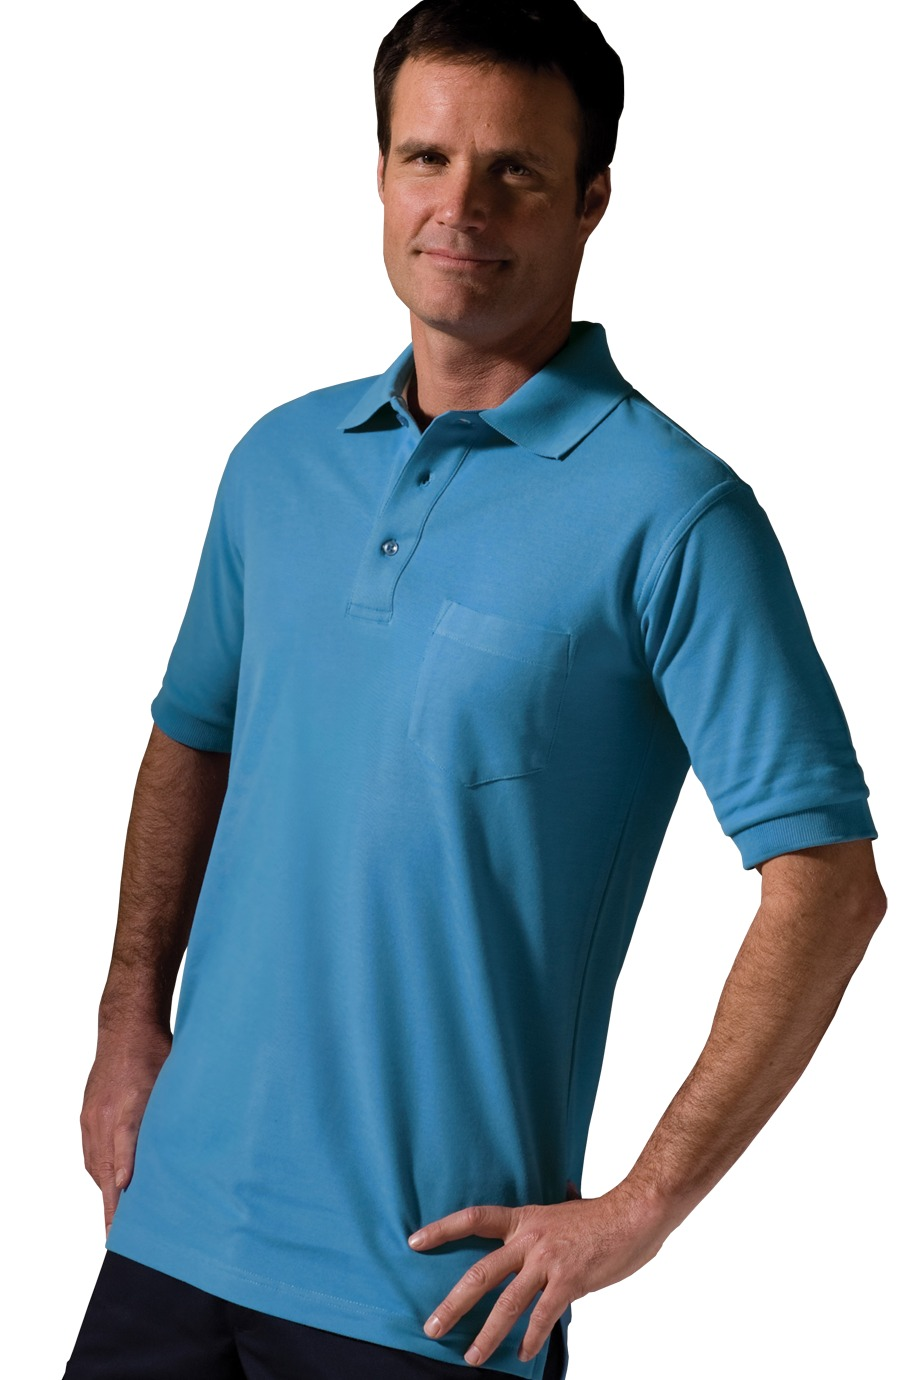 Edwards Garment 1505 - Soft Touch Short Sleeve Pique ...